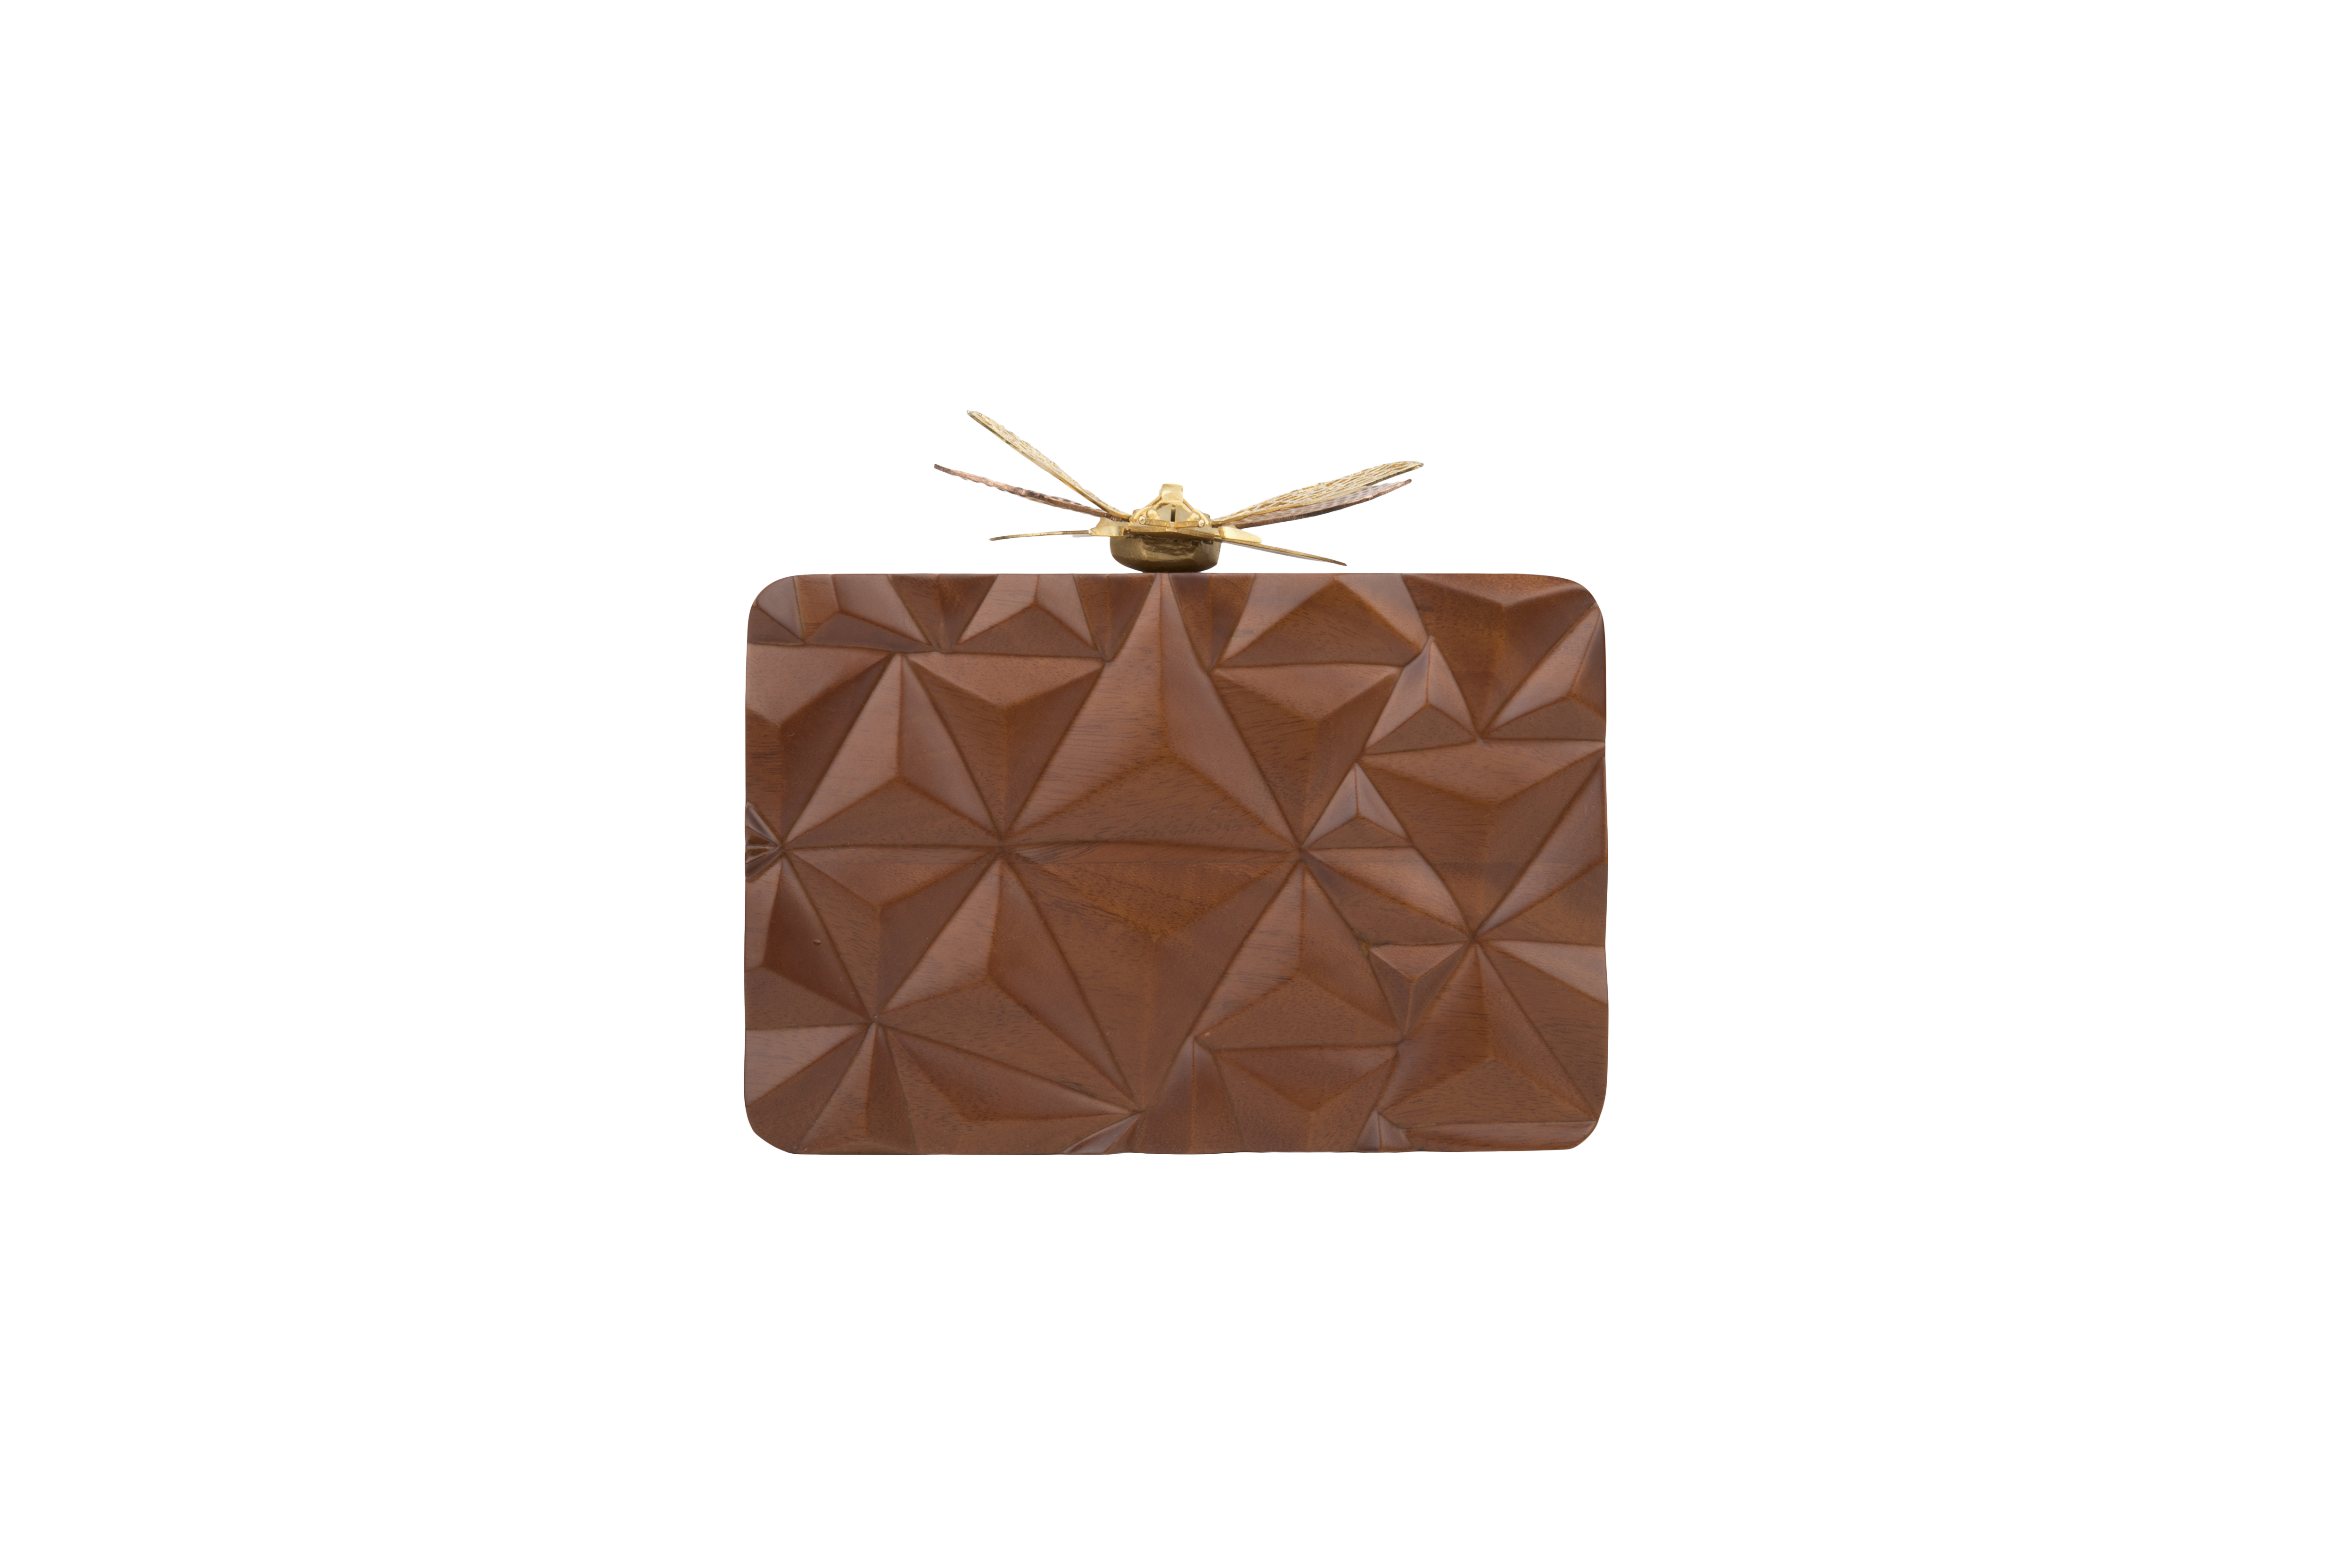 Triangle Wooden Dragonfly Clutch by Duet Luxury on curated-crowd.com